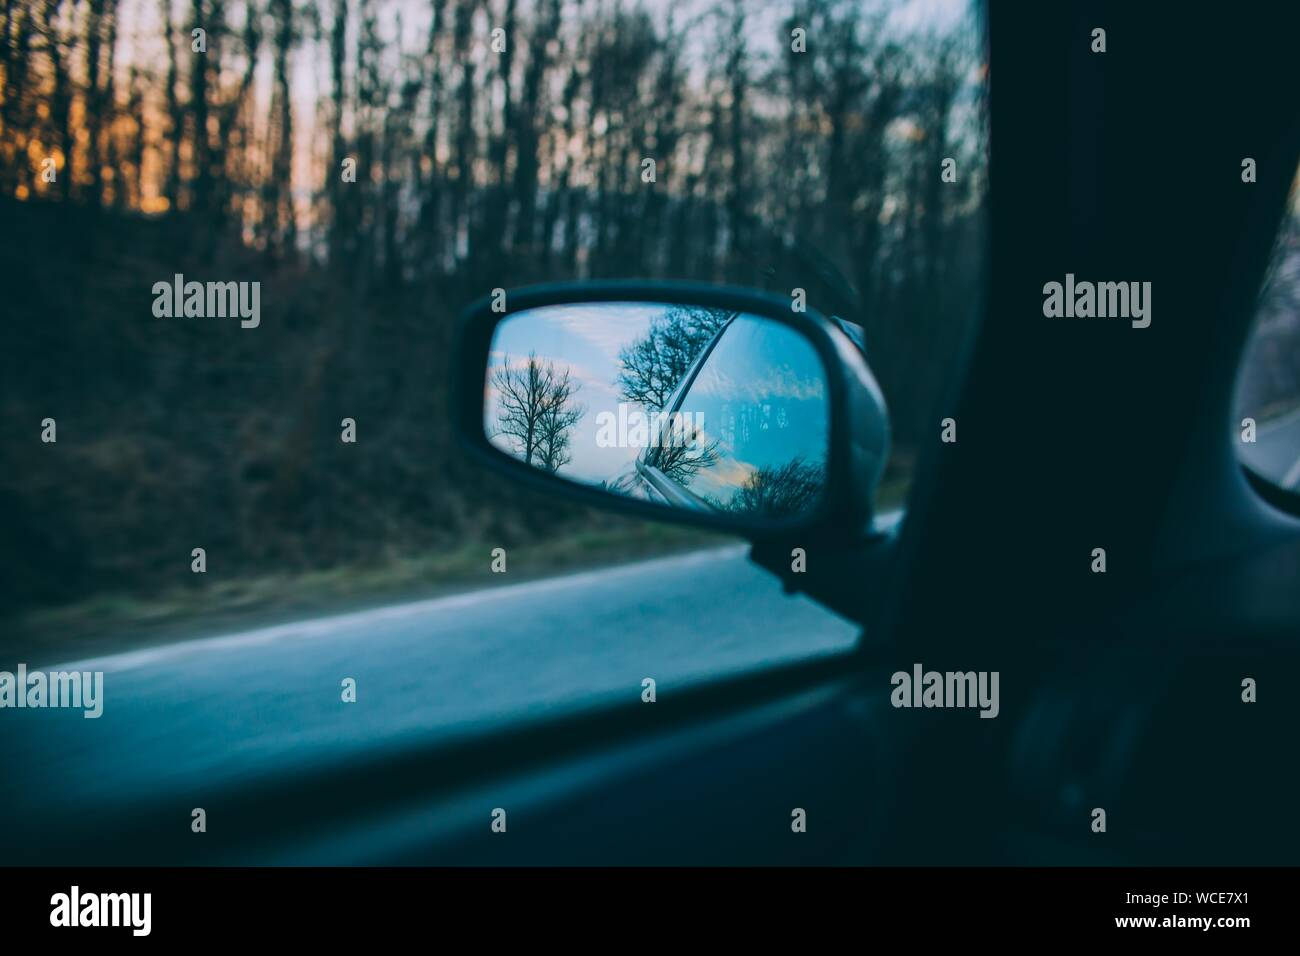 A beautiful shot of trees and the blue sky reflected on a cars side mirror with a blurred road in the background Stock Photo